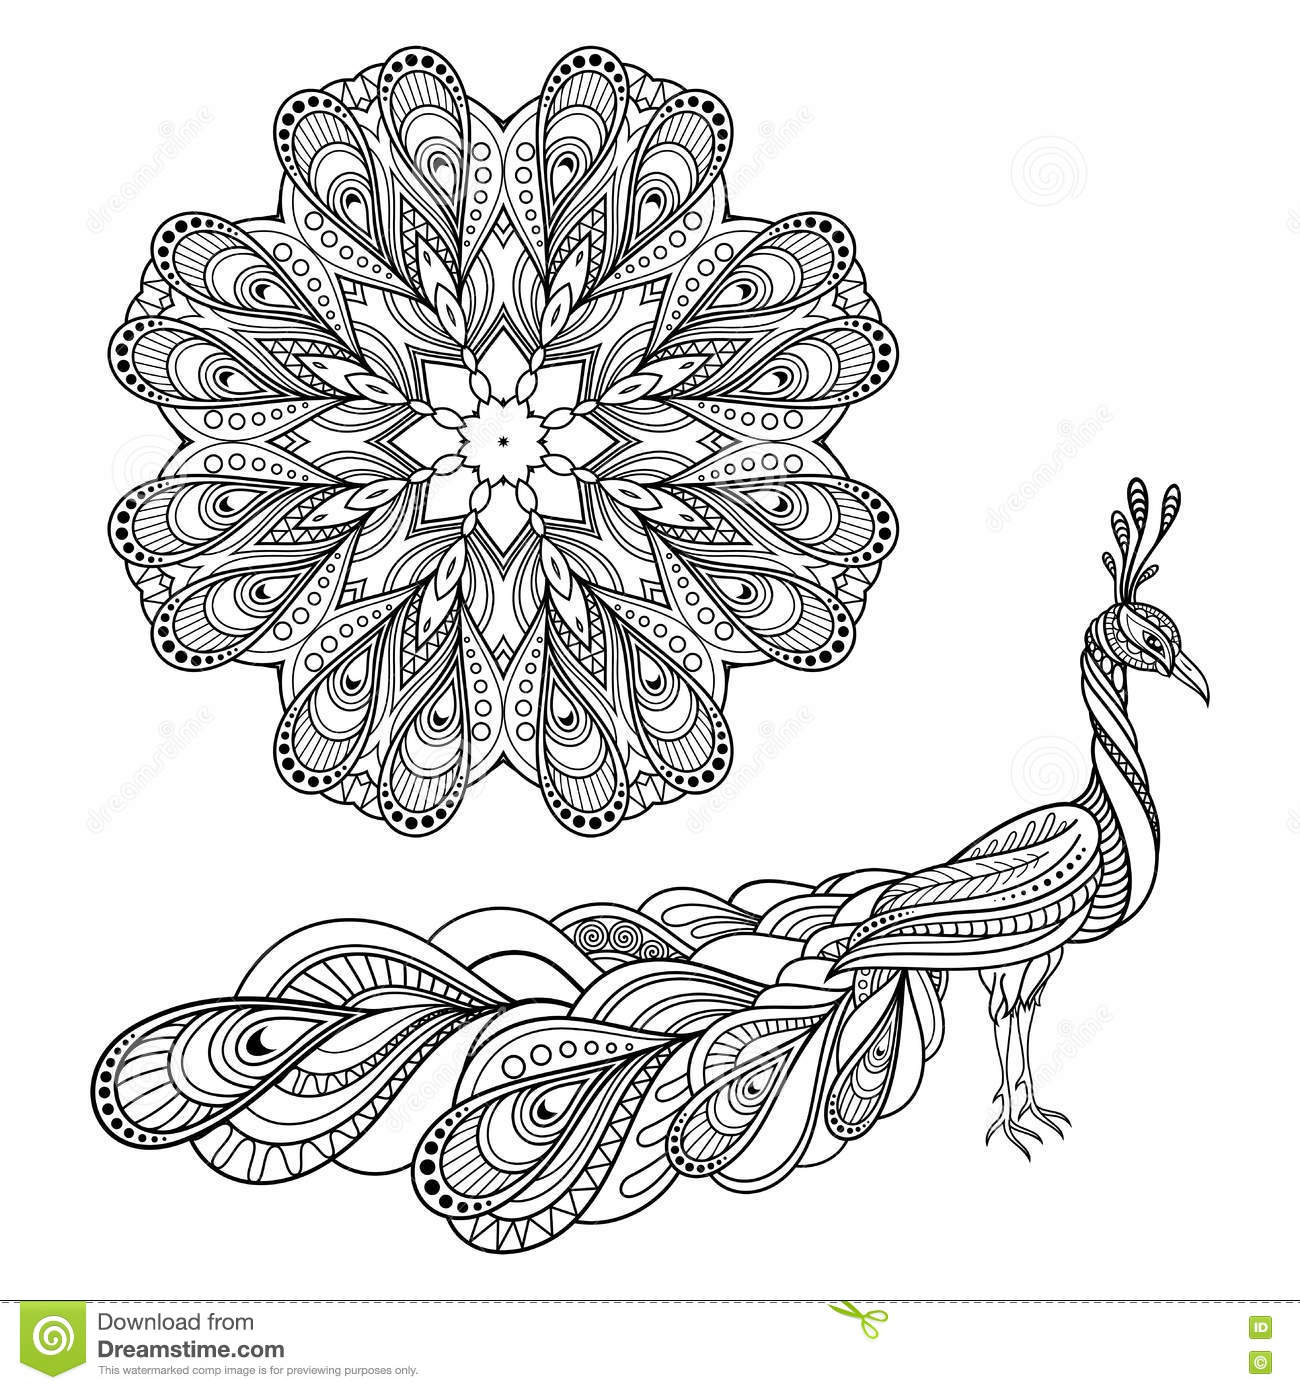 vektor stammes dekorativer pfau und mandala 73120325 likewise mandalas coloring pages for adults 1 on mandalas coloring pages for adults also mandalas coloring pages for adults 2 on mandalas coloring pages for adults besides mandalas coloring pages for adults 3 on mandalas coloring pages for adults besides blue mandala on mandalas coloring pages for adults